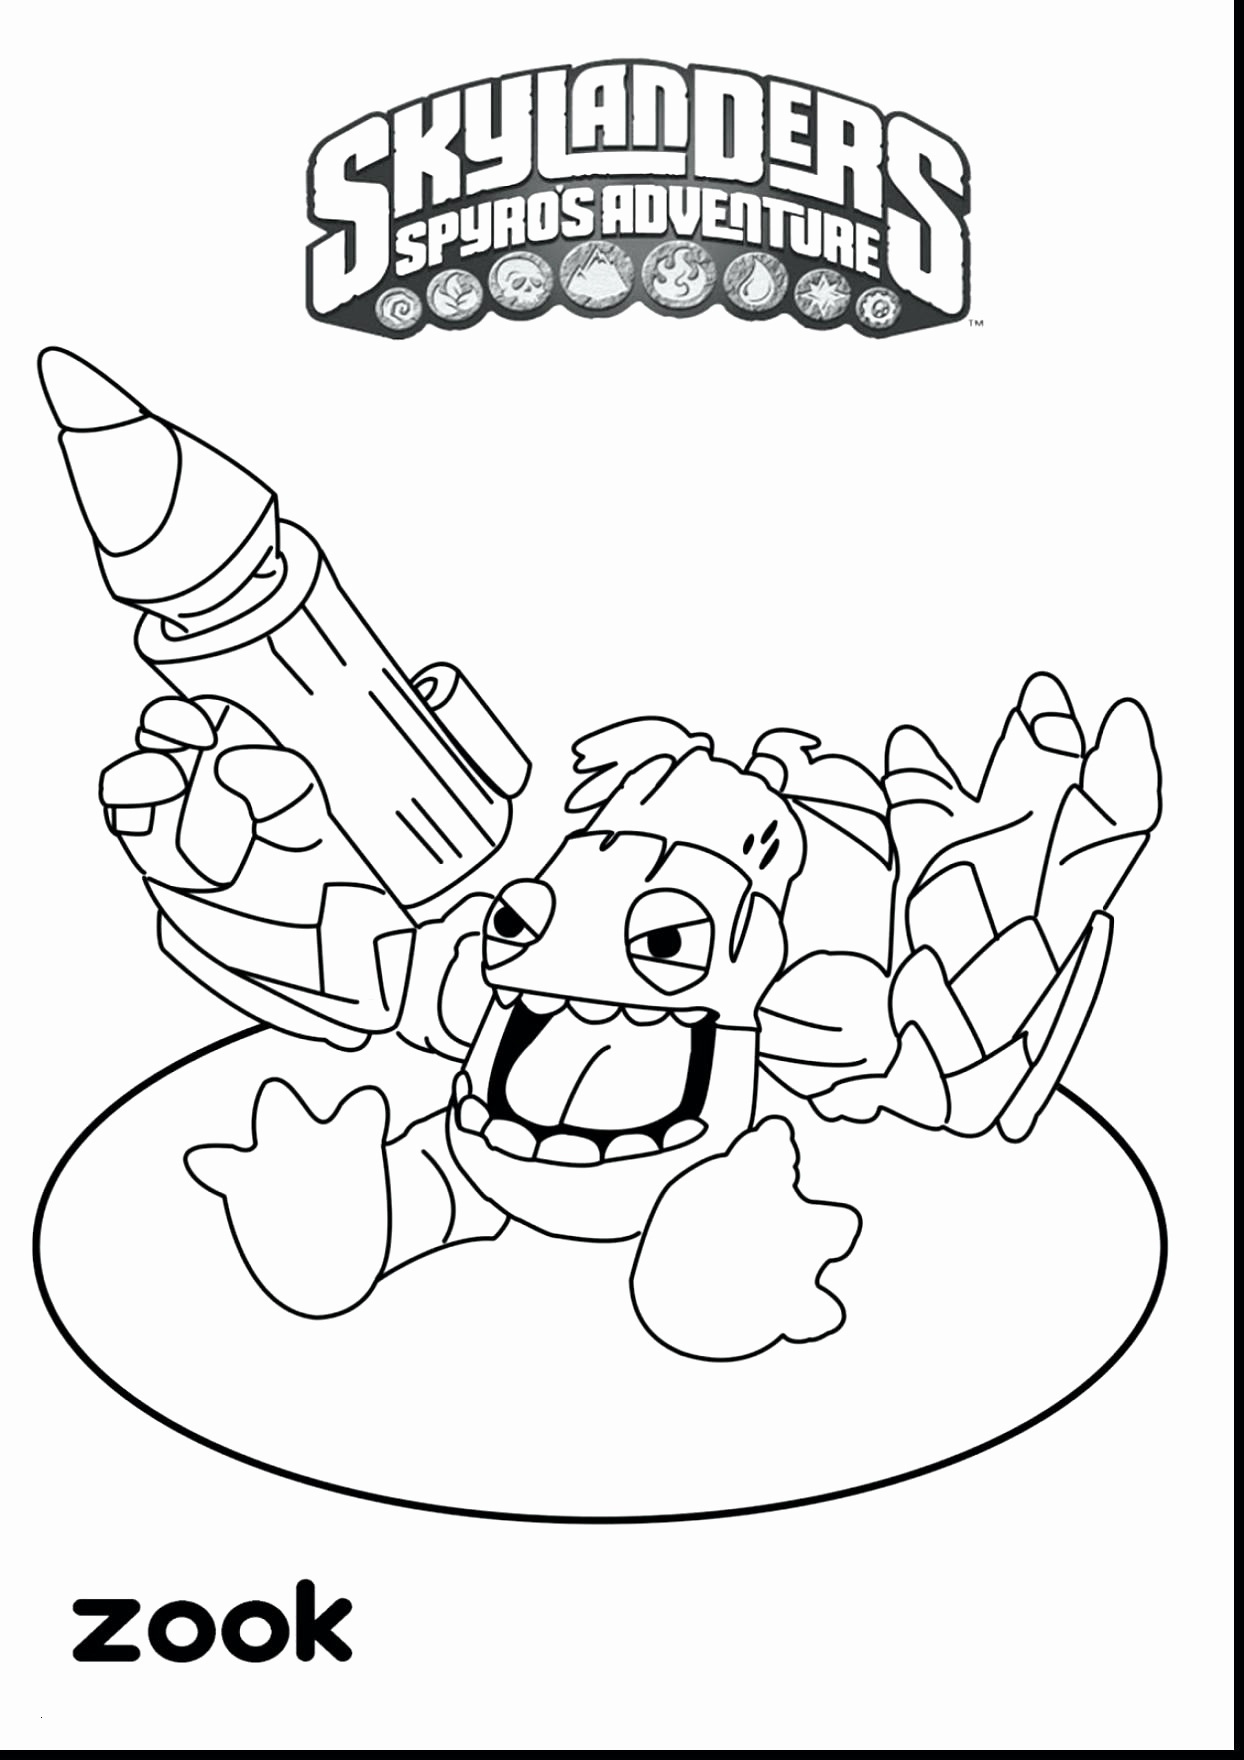 preschool bible coloring pages Collection-Jesus with Children Coloring Pages Fabulous Kids Bible Coloring Page Letramac 8-h